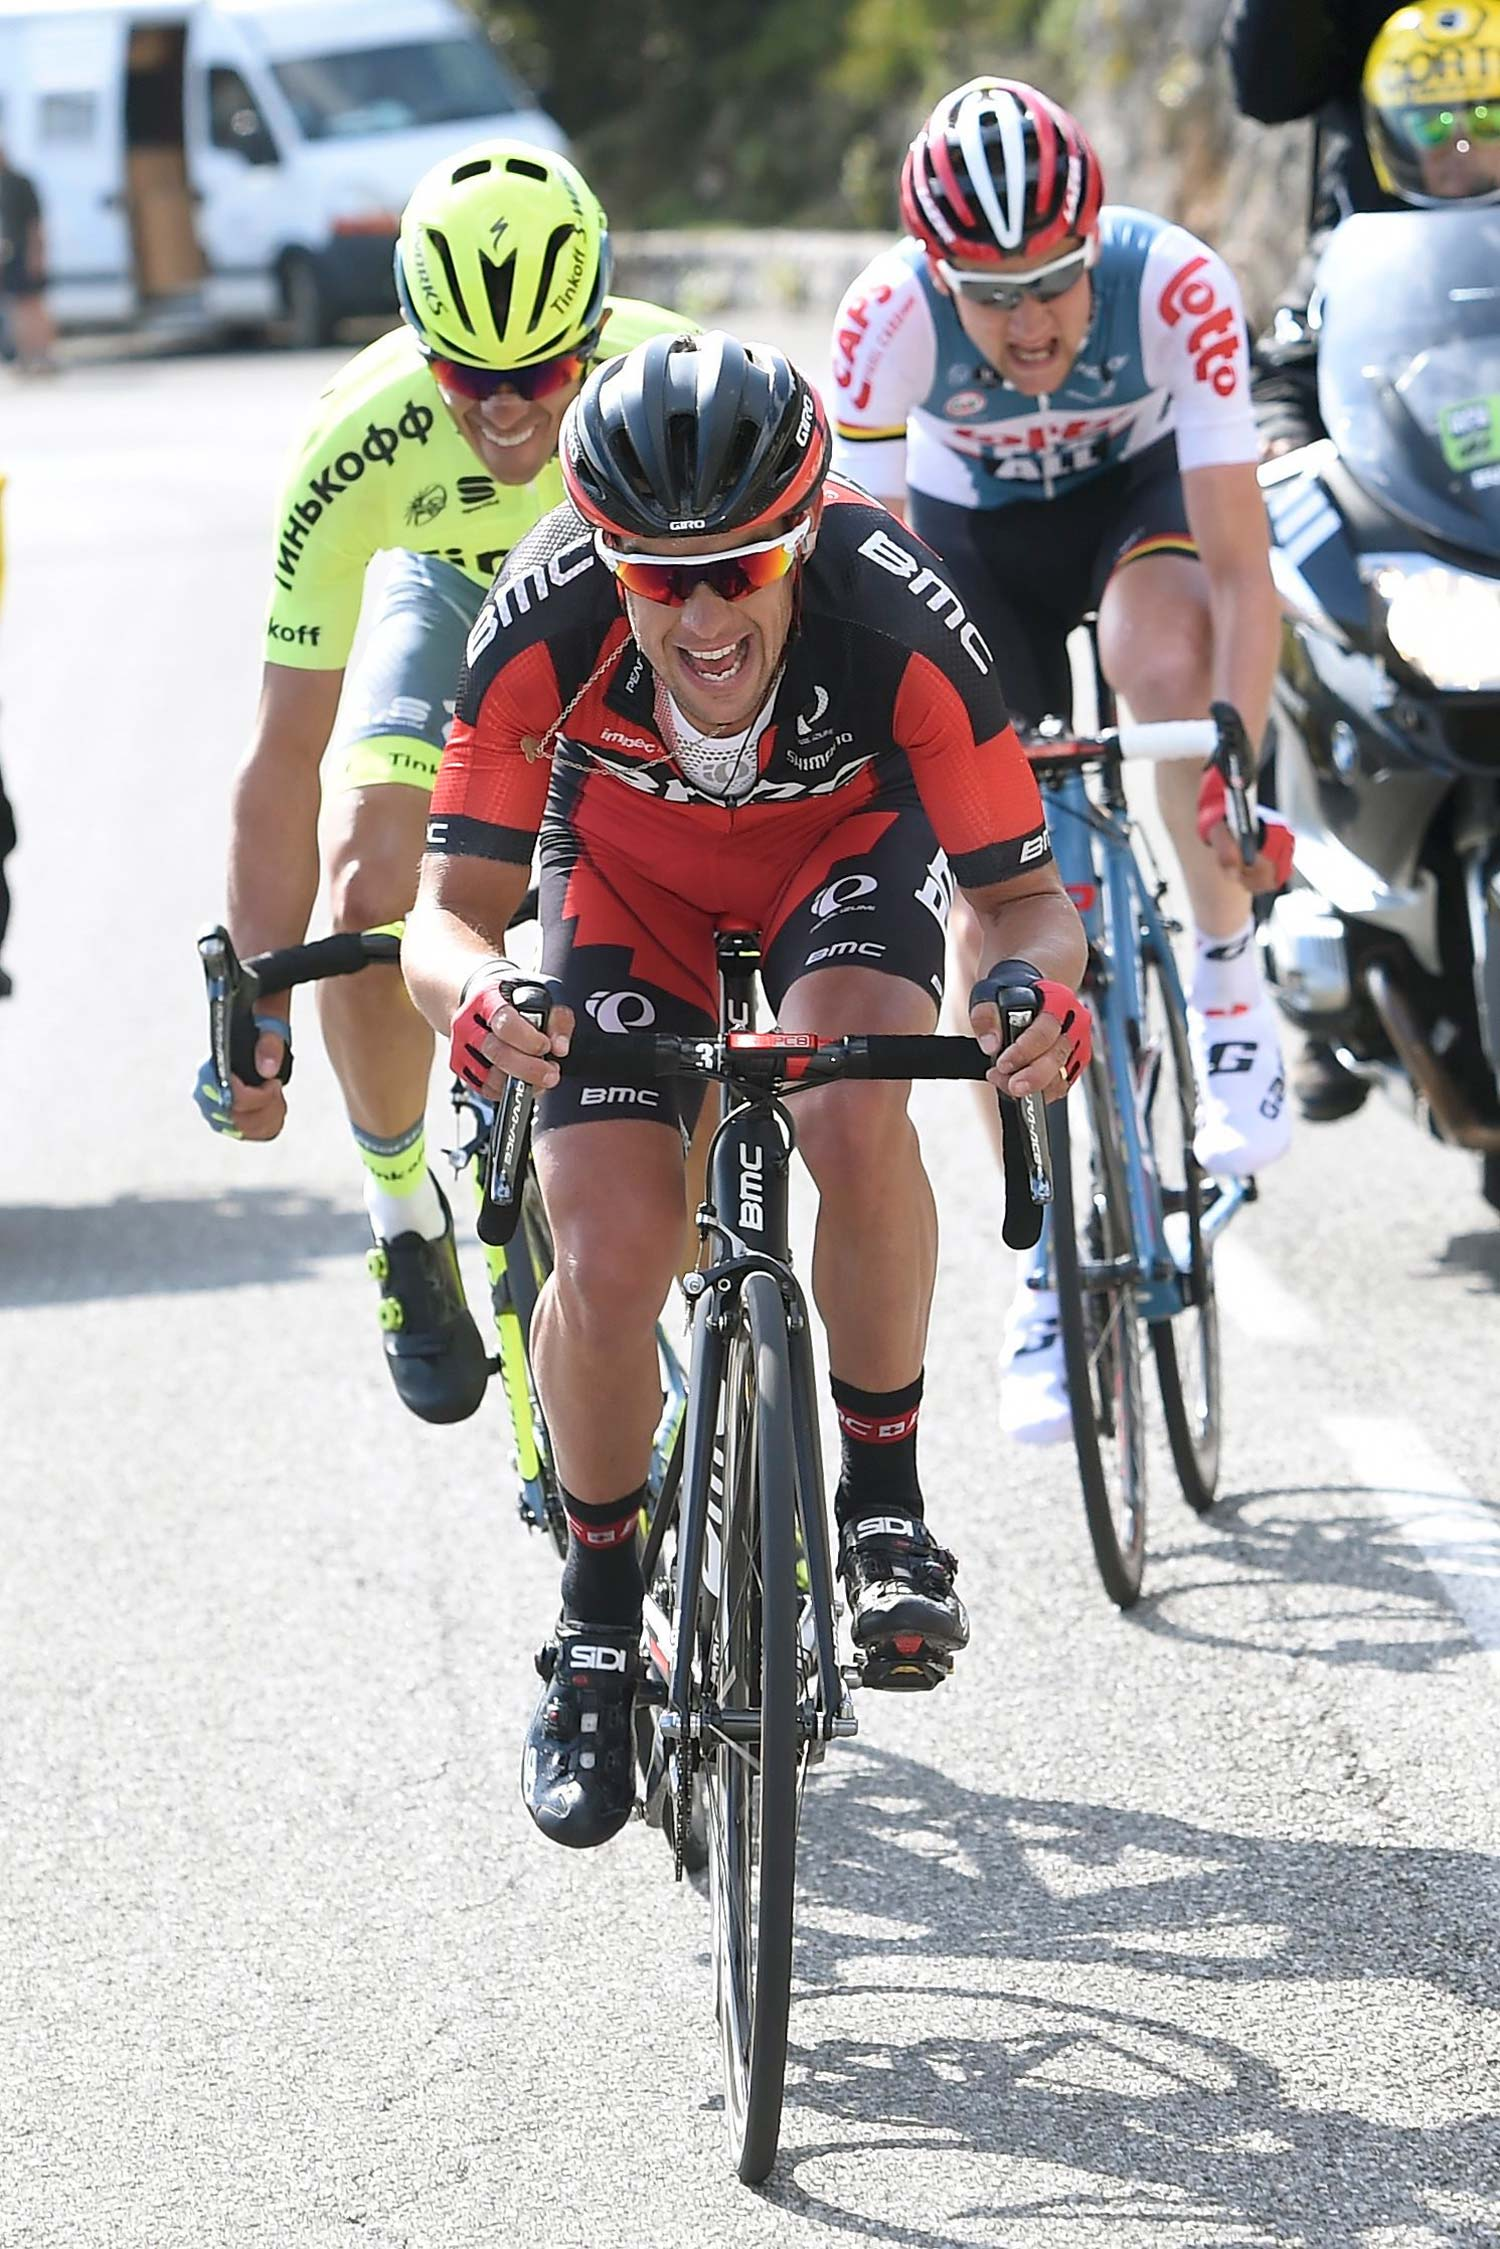 Richie Porte on the attack in stage seven of Paris-Nice with Alberto Contador and Tim Wellens. Photo: Graham Watson